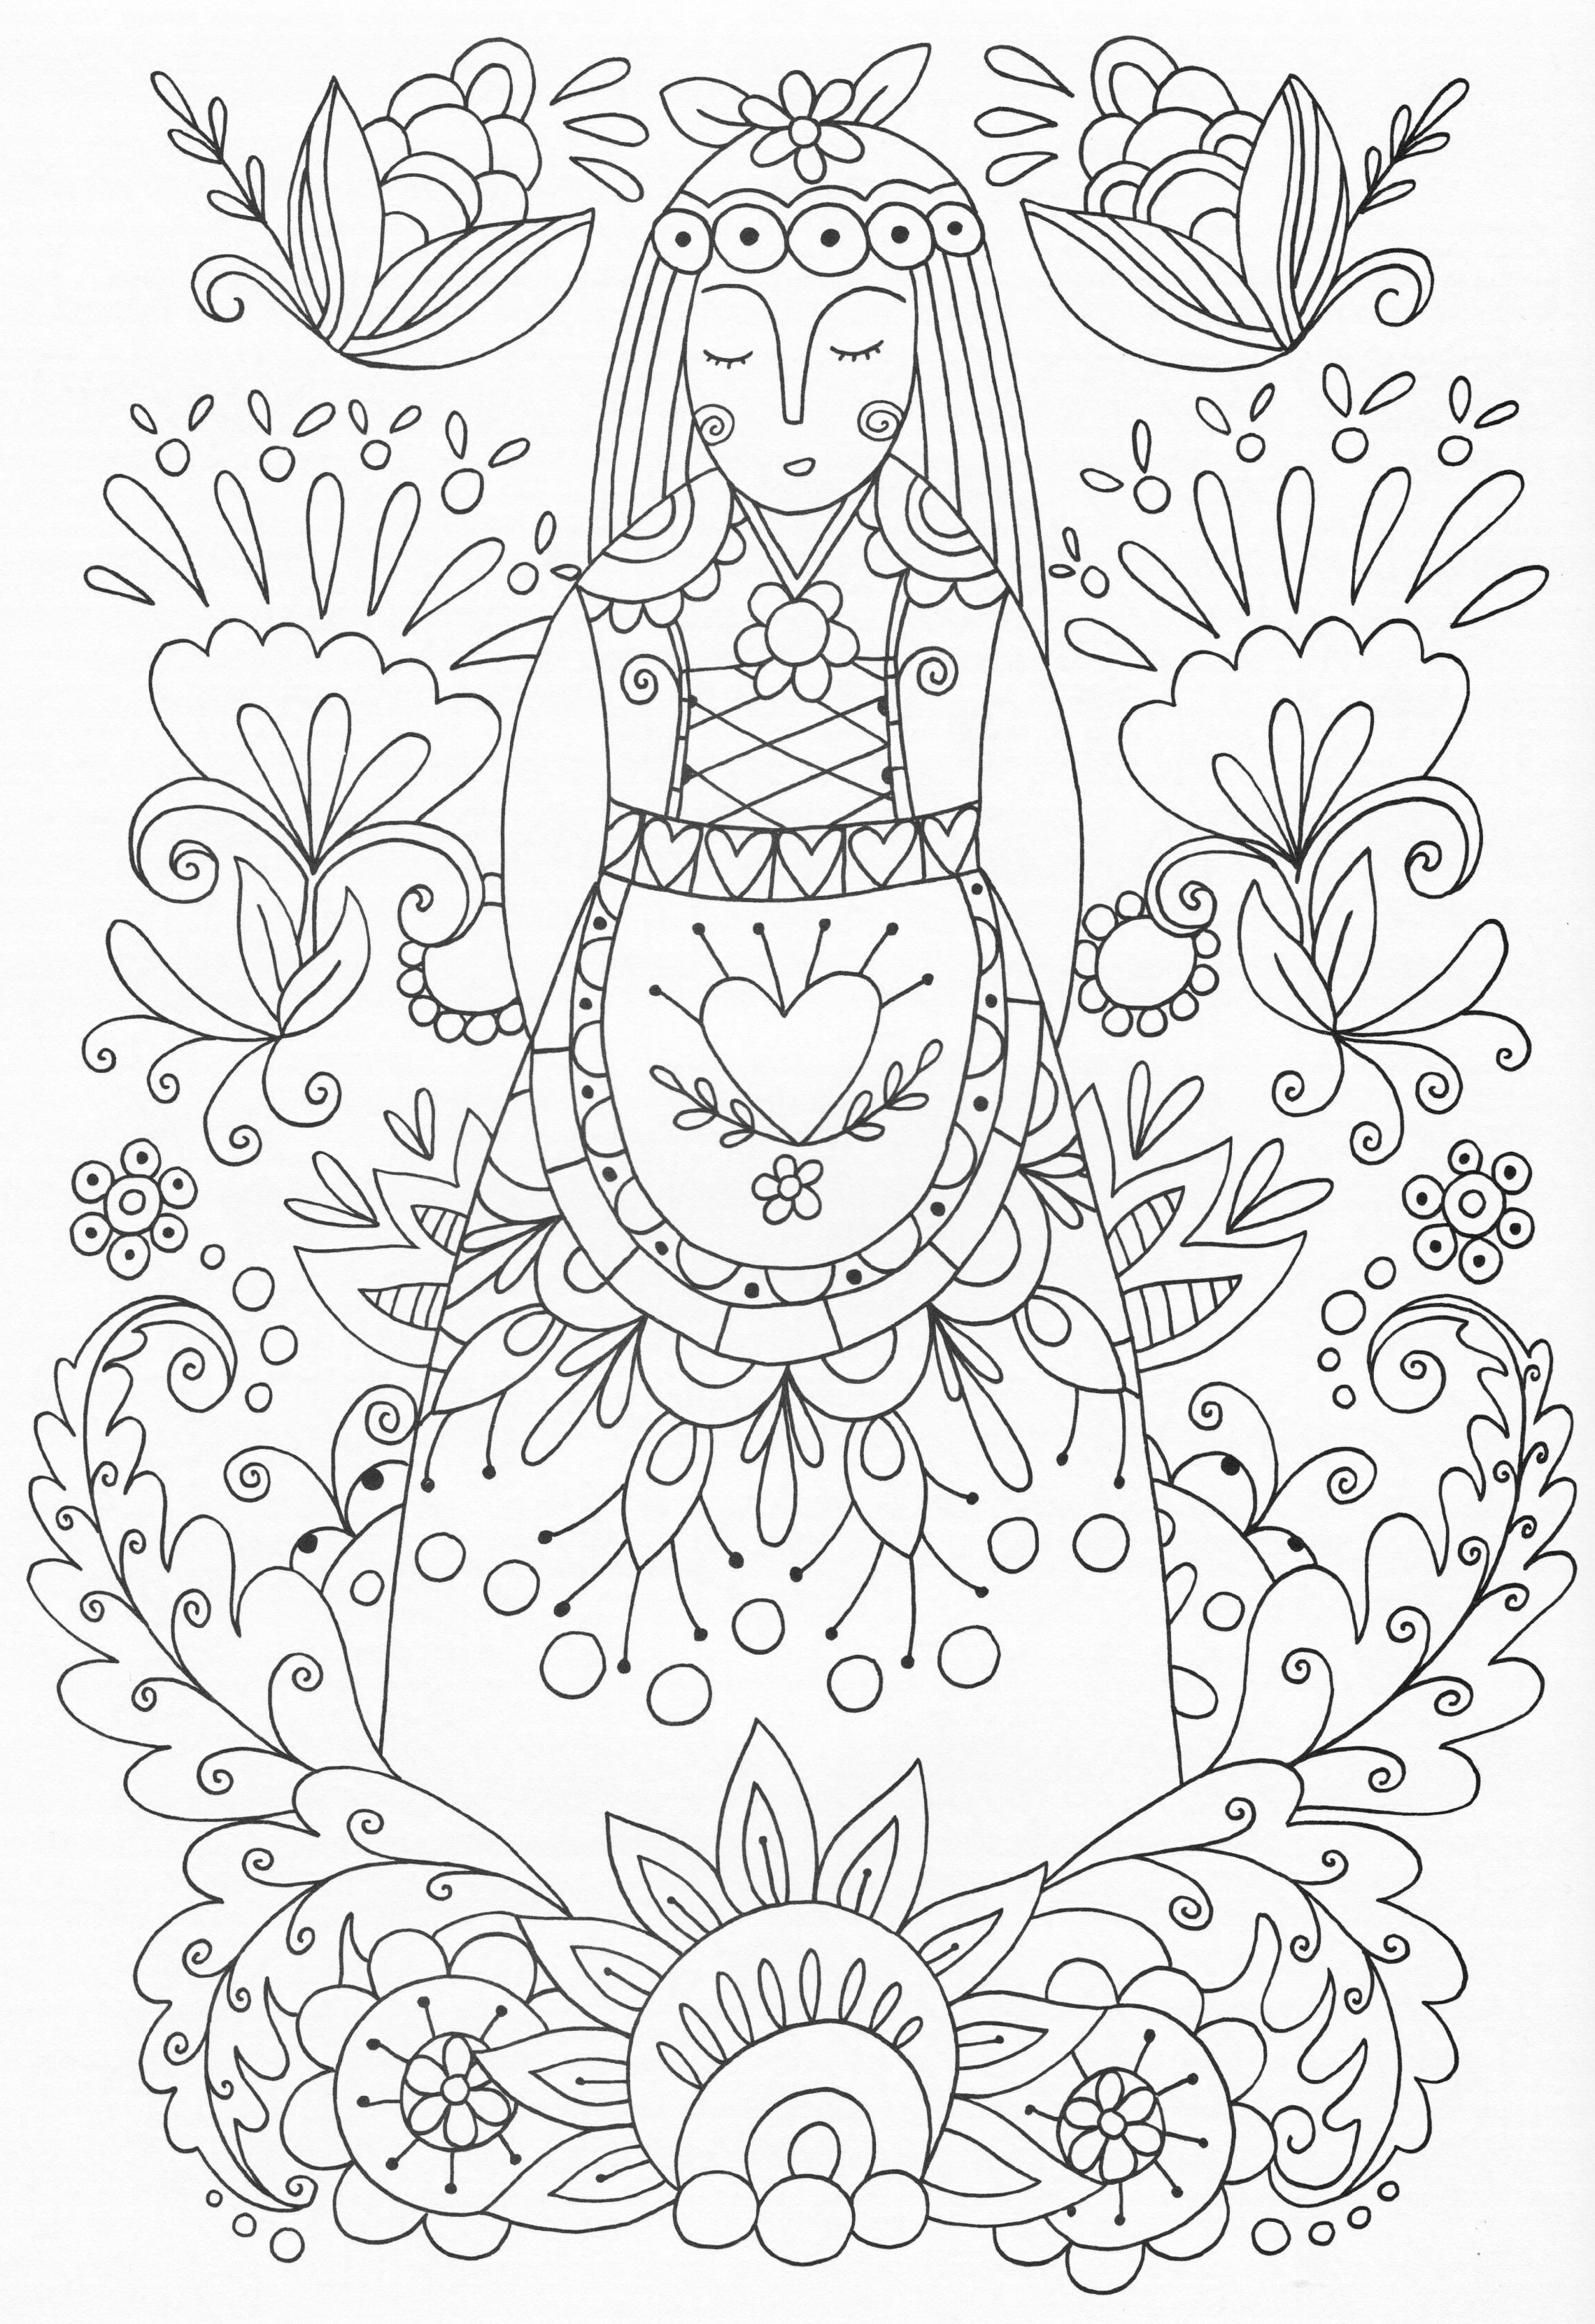 Coloring pages for donna flor - Find This Pin And More On Color Pages Stencils Templates Patterns